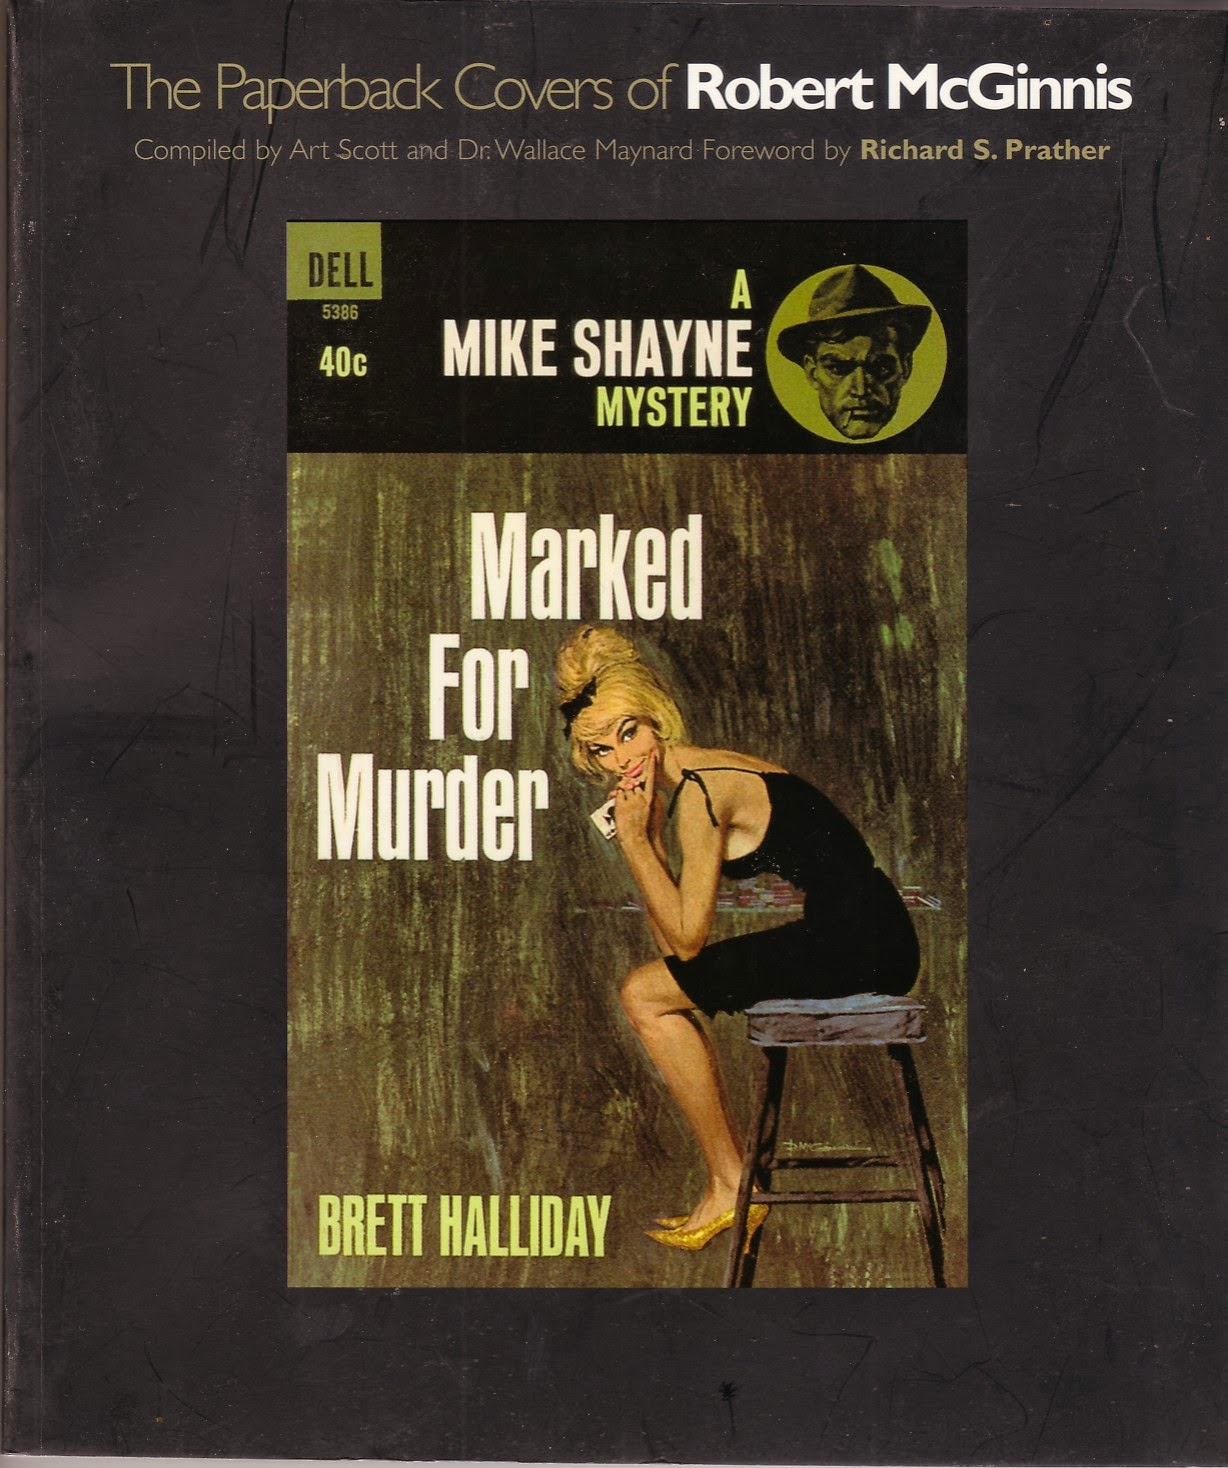 book cover - The Paperback Covers of .jpg